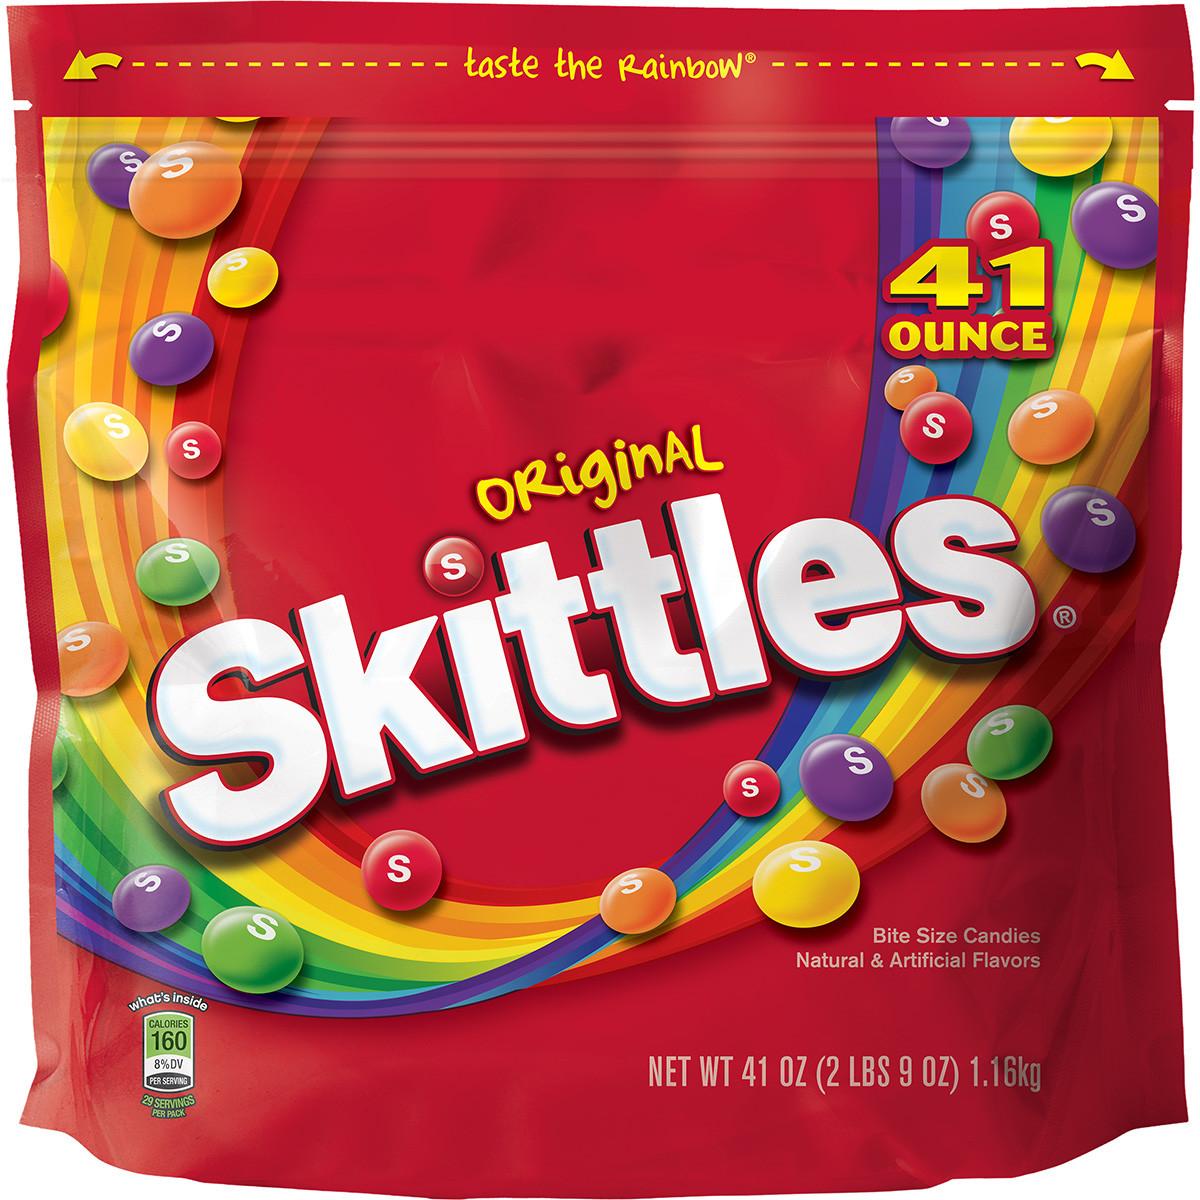 Skittles Original Candy Bag, 41 ounce